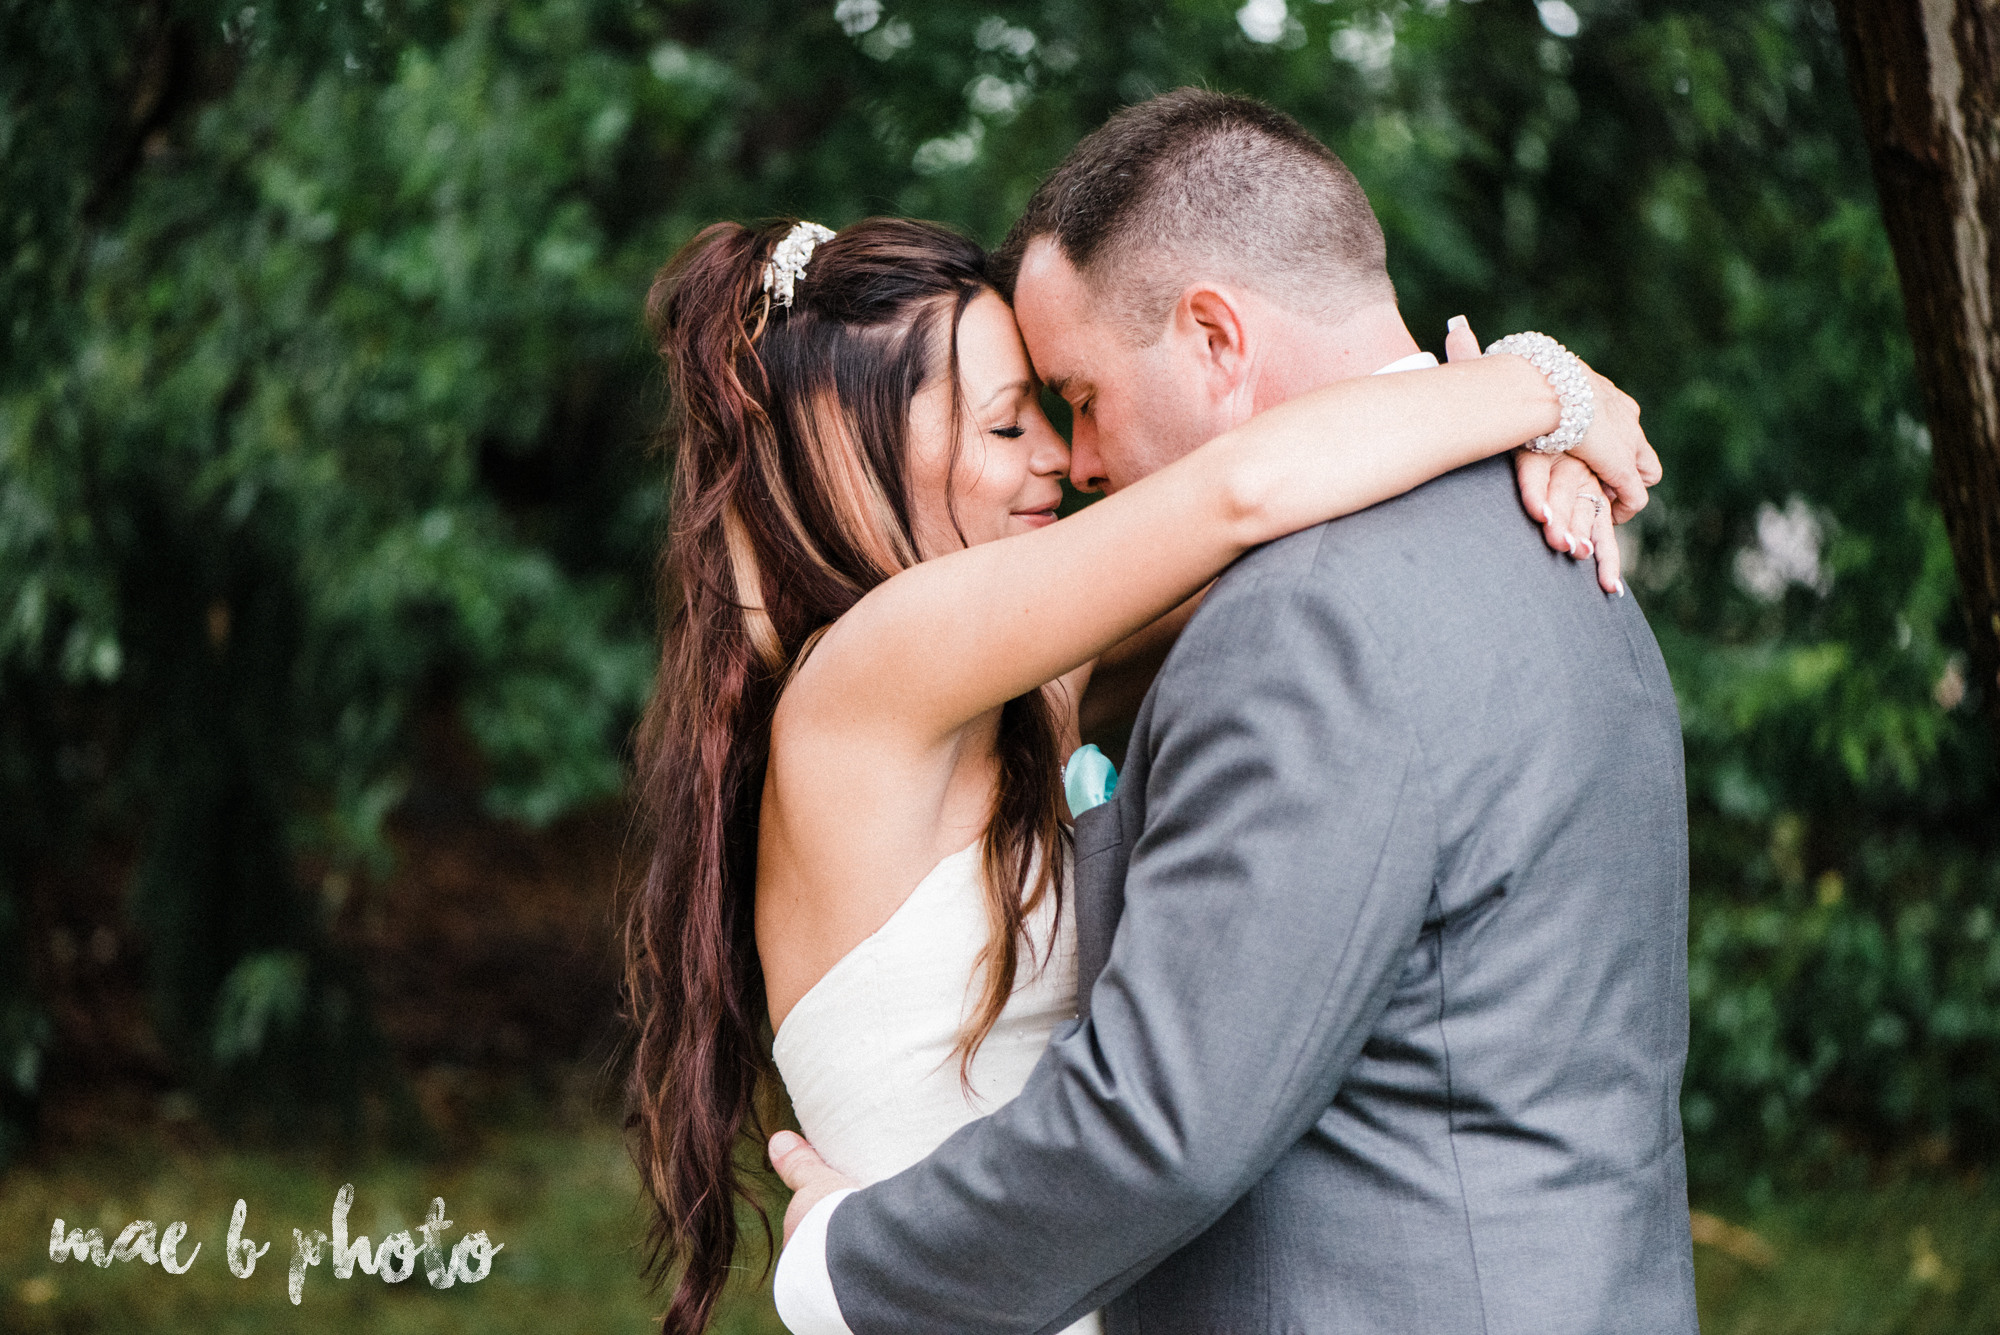 kristy and matt's summer wedding at the embassy in youngstown ohio photographed by youngstown wedding photographer mae b photo-29.jpg